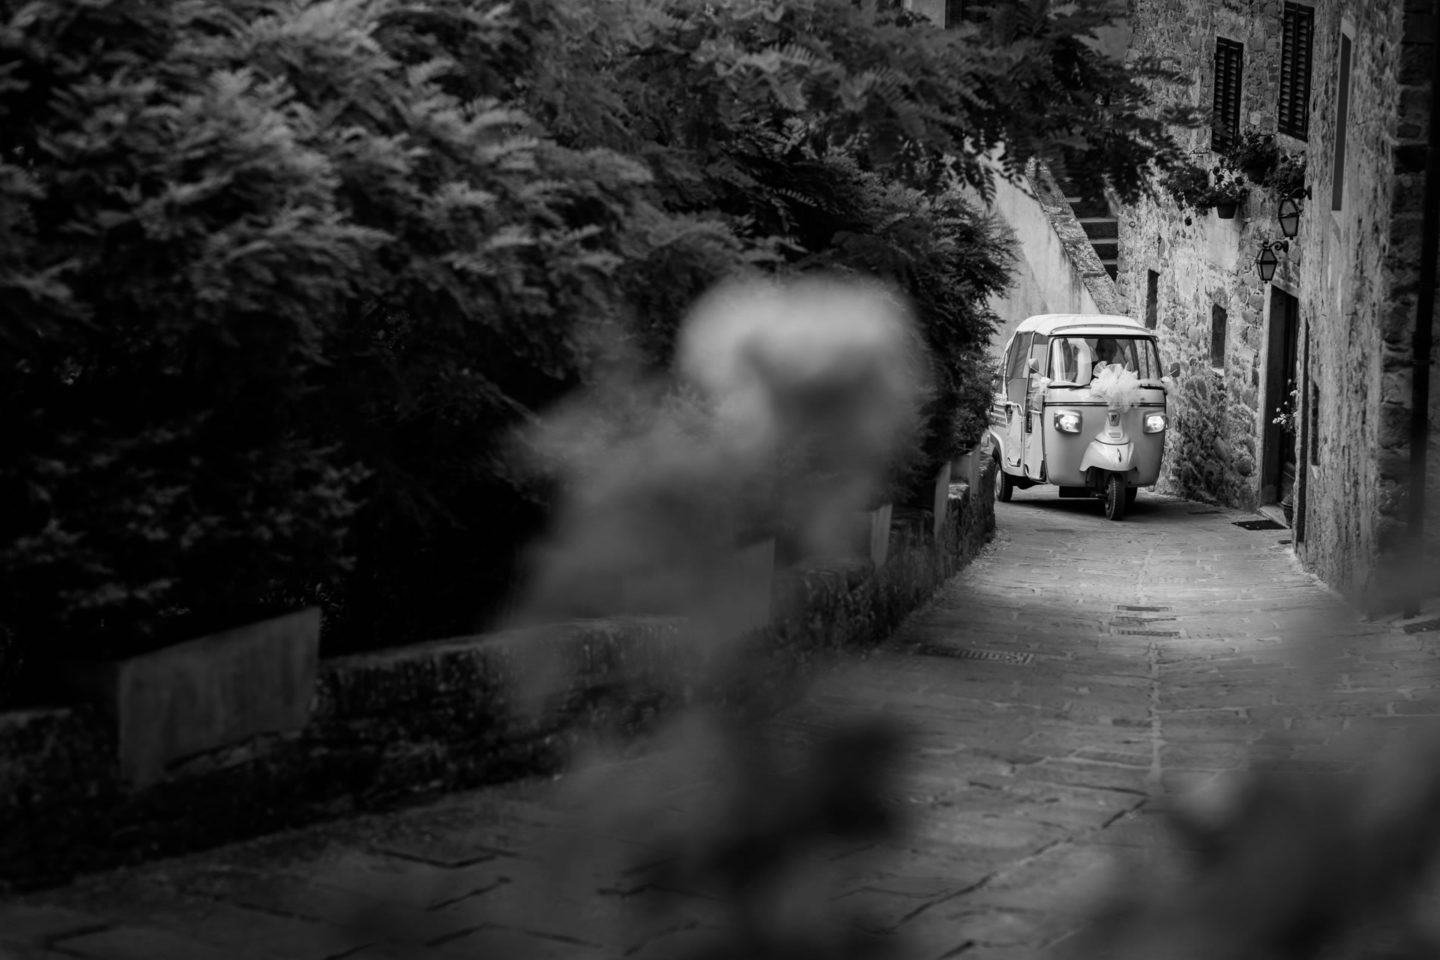 Car :: Amazing wedding day at Il Borro :: Luxury wedding photography - 14 :: Car